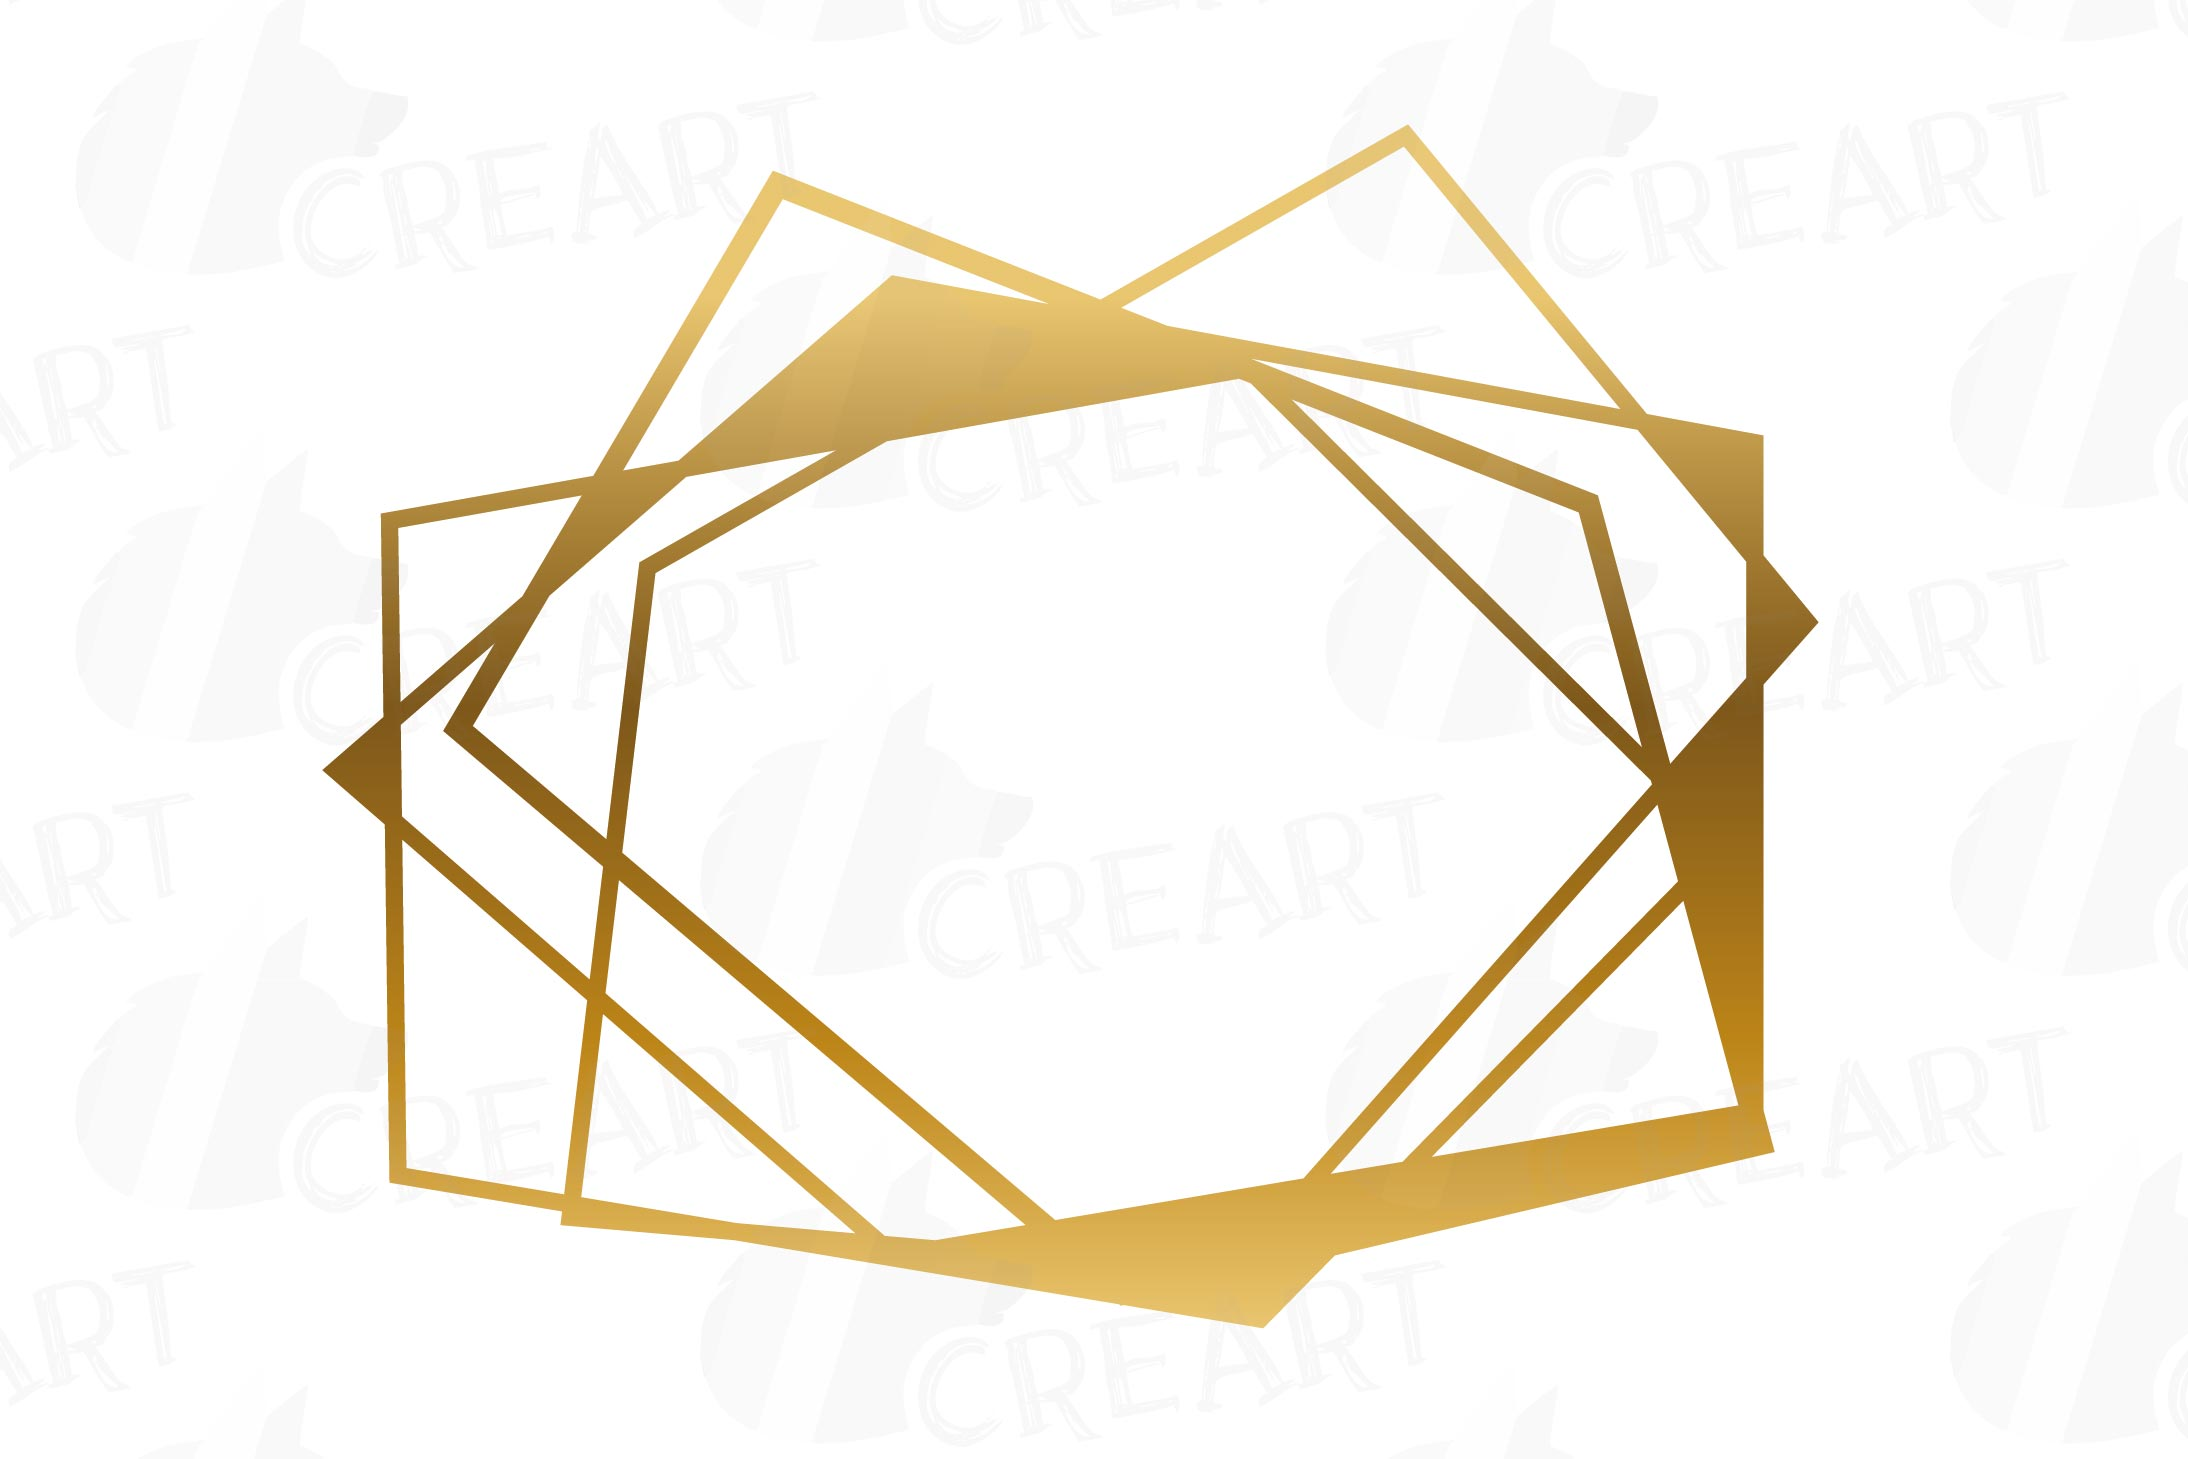 Chaotic geometric golden frames, lineal frames clip art example image 12